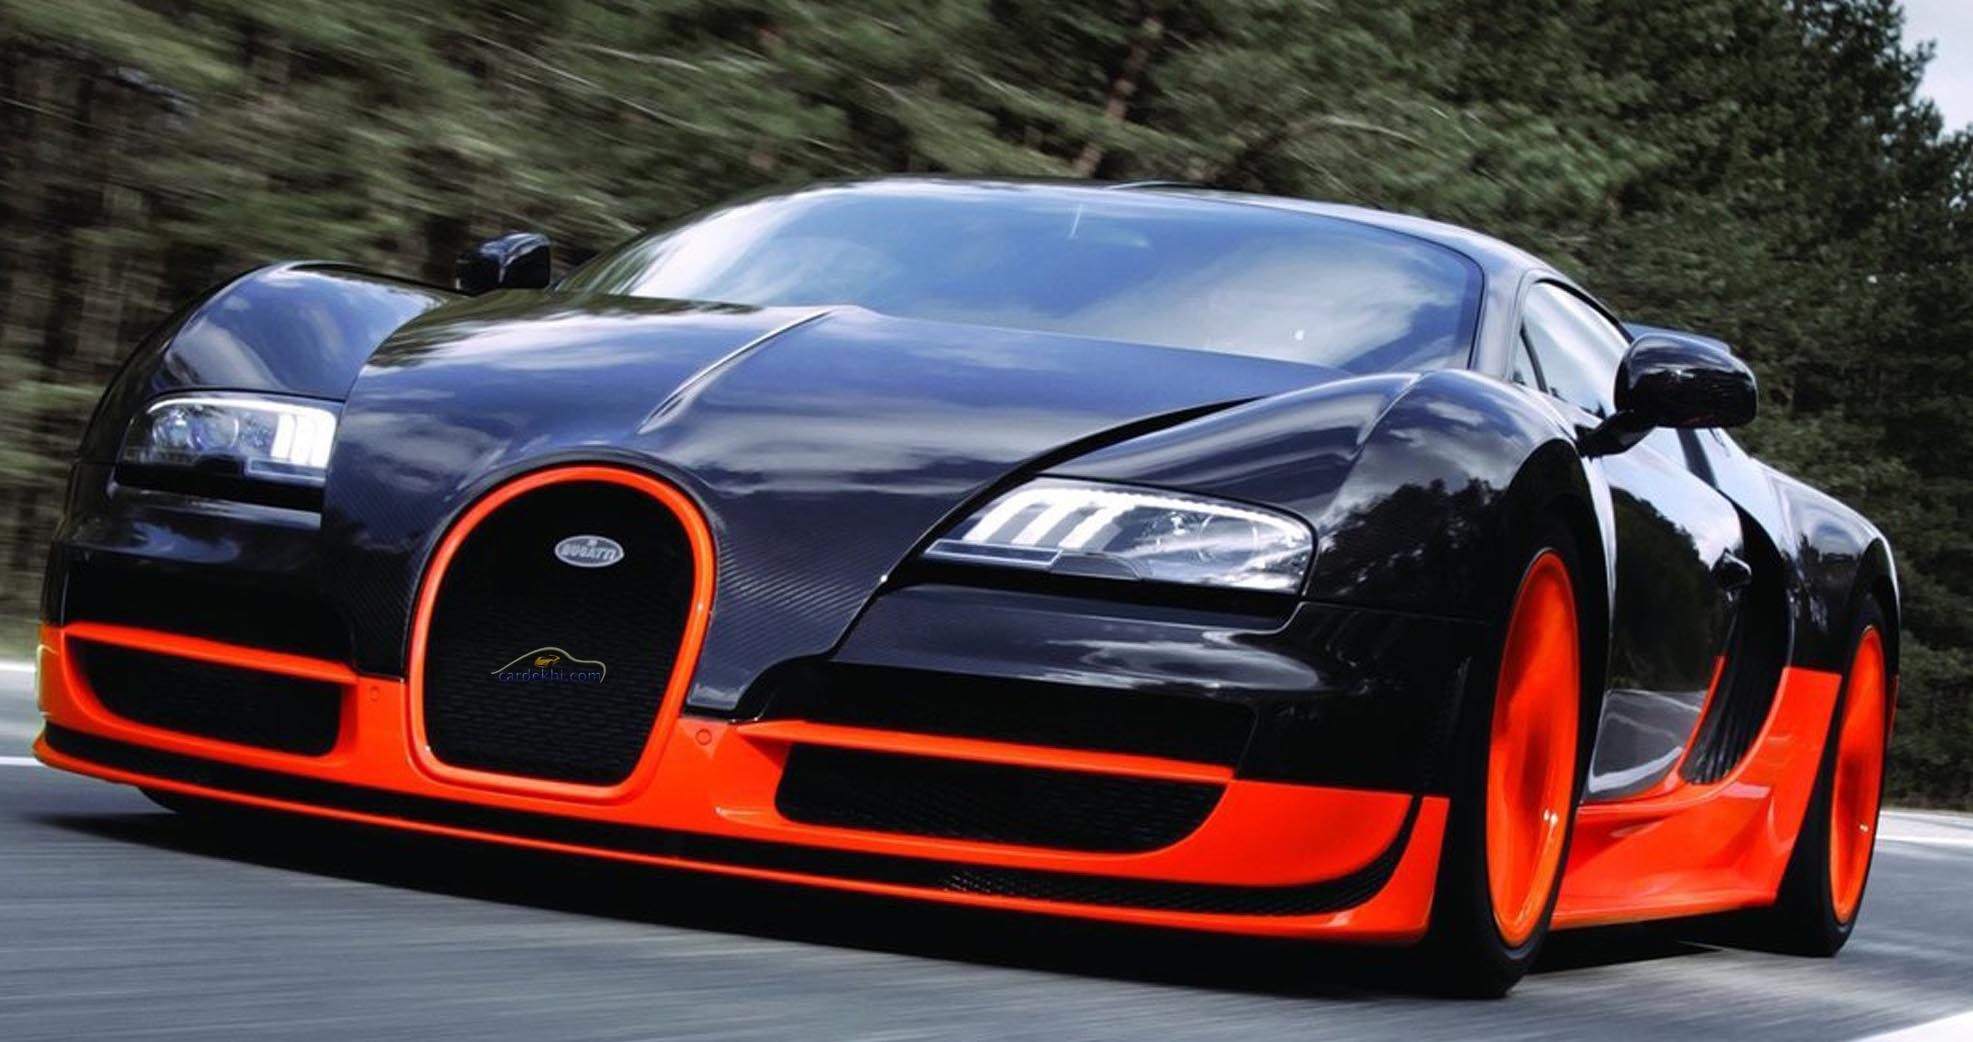 pix for the fastest car in the world wallpaper - Super Fast Cars In The World